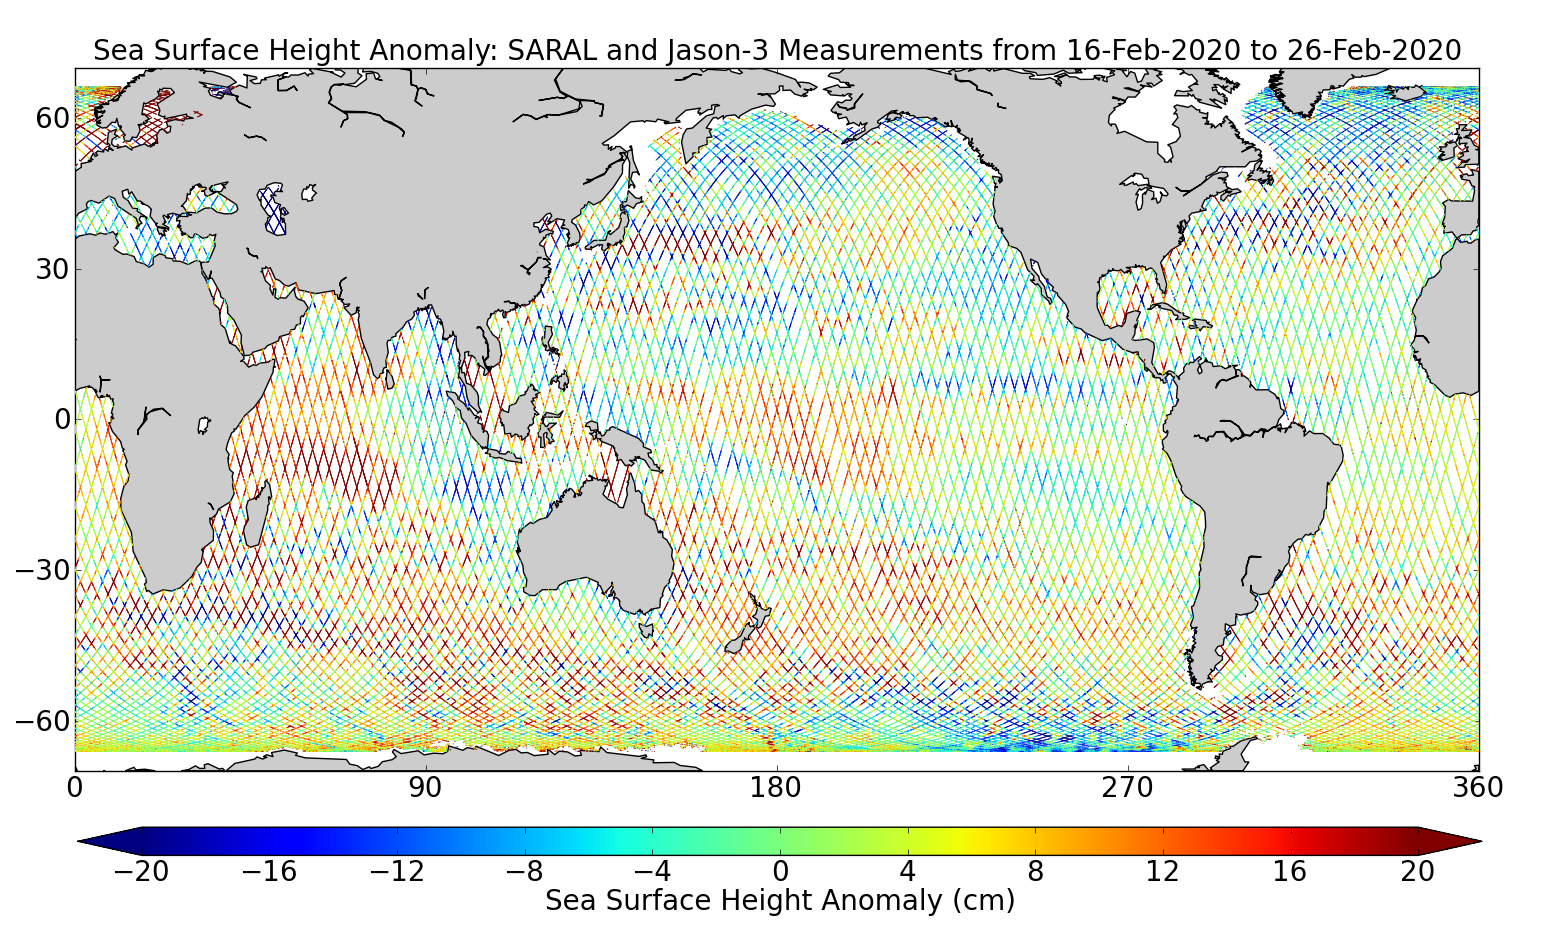 Sea Surface Height Anomaly: SARAL and Jason-3 Measurements from 16-Feb-2020 to 26-Feb-2020